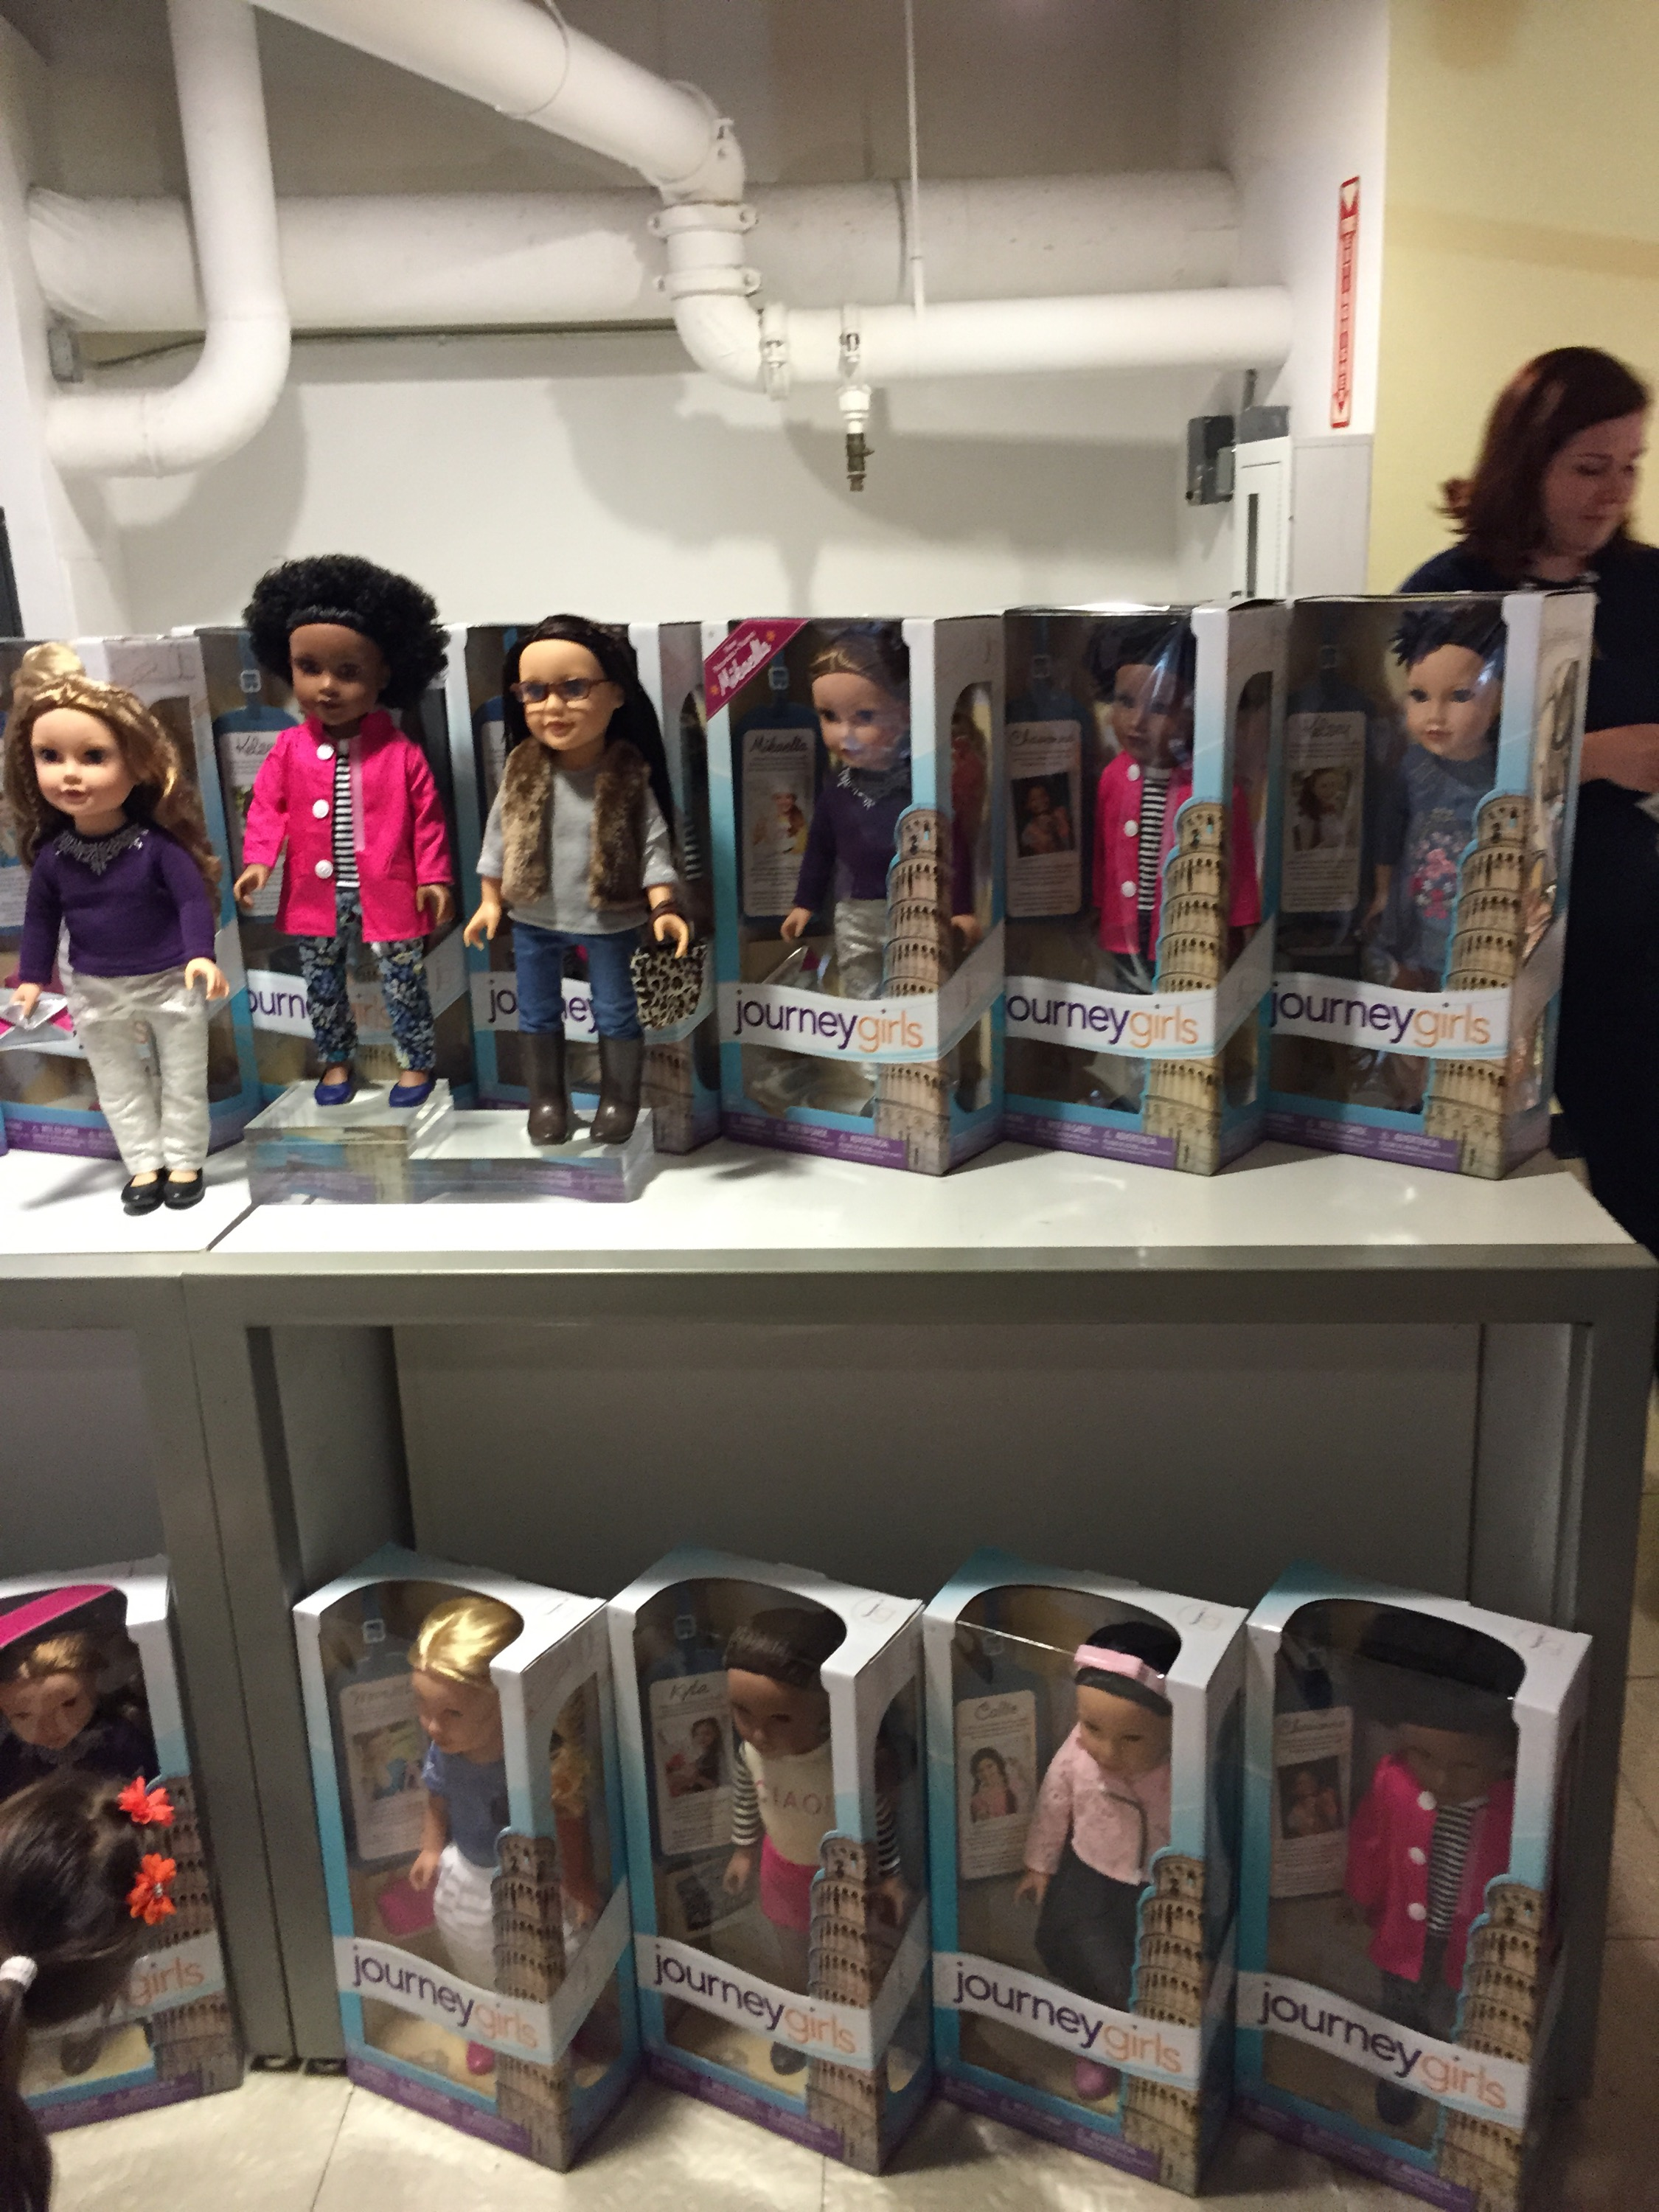 EXCLUSIVE JOURNEY GIRLS ITALY INSPIRED DOLL COLLECTION AT TOYS R